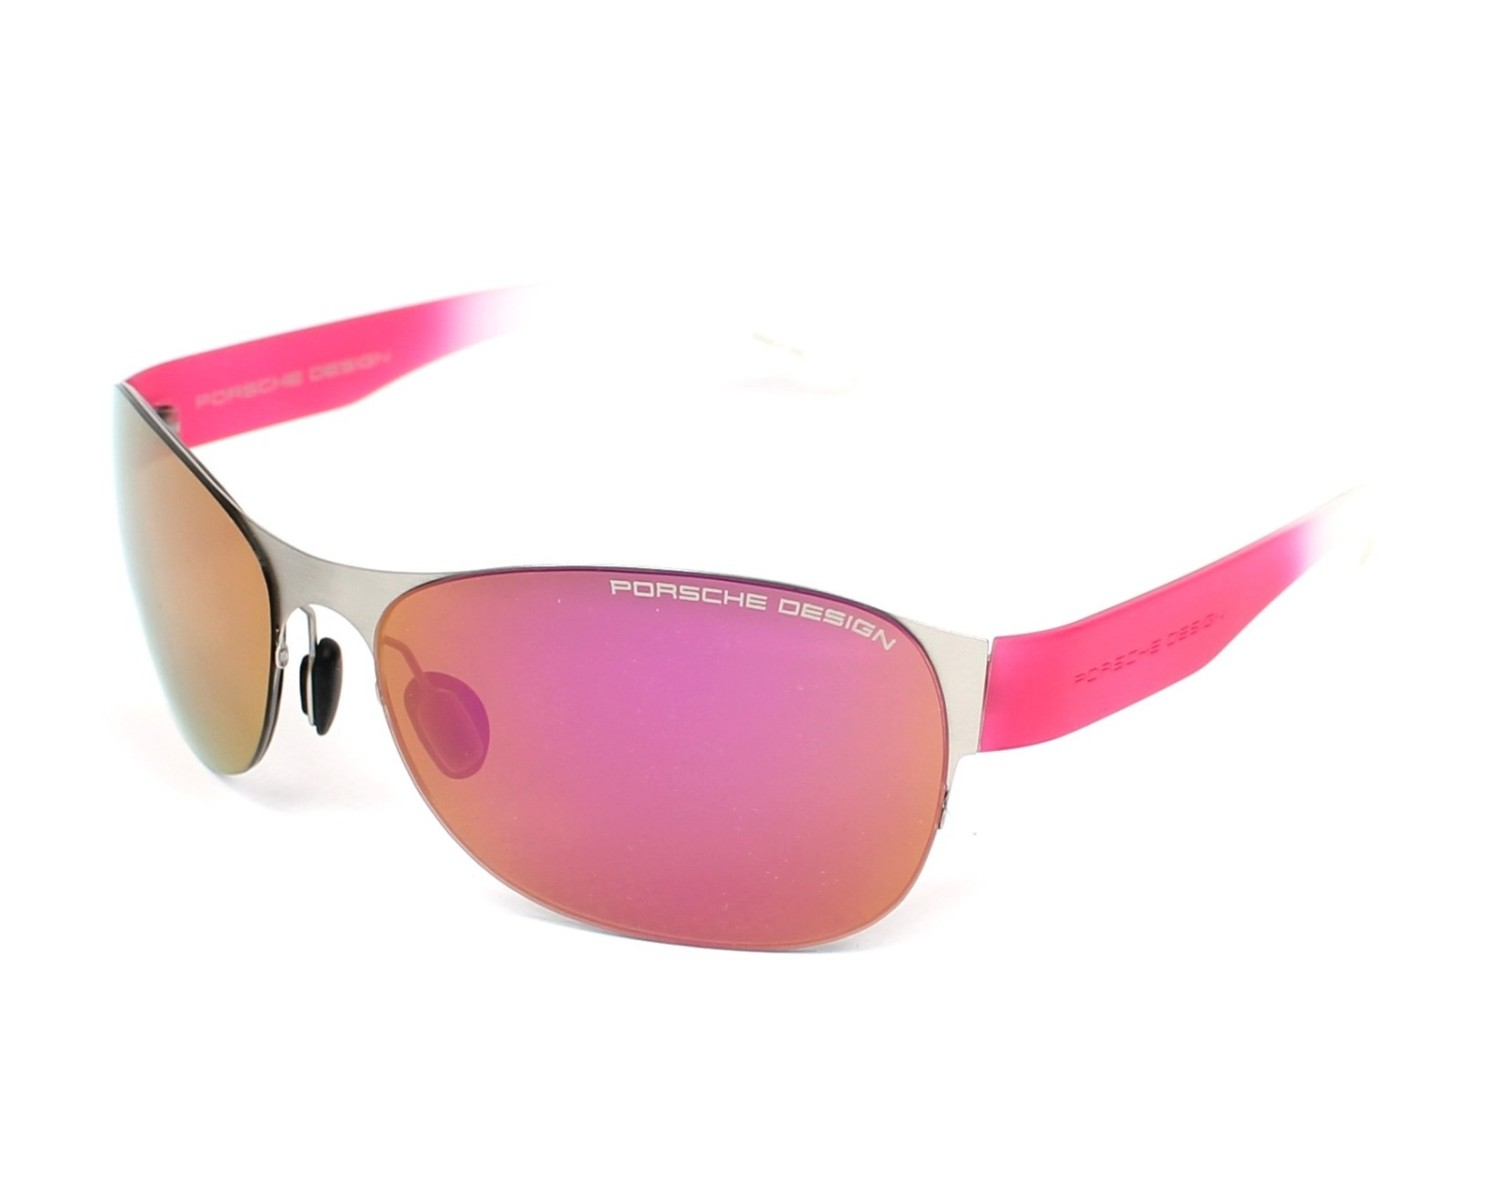 Porsche Design Sunglasses P 8581 B Buy Now And Save 48 Visionet